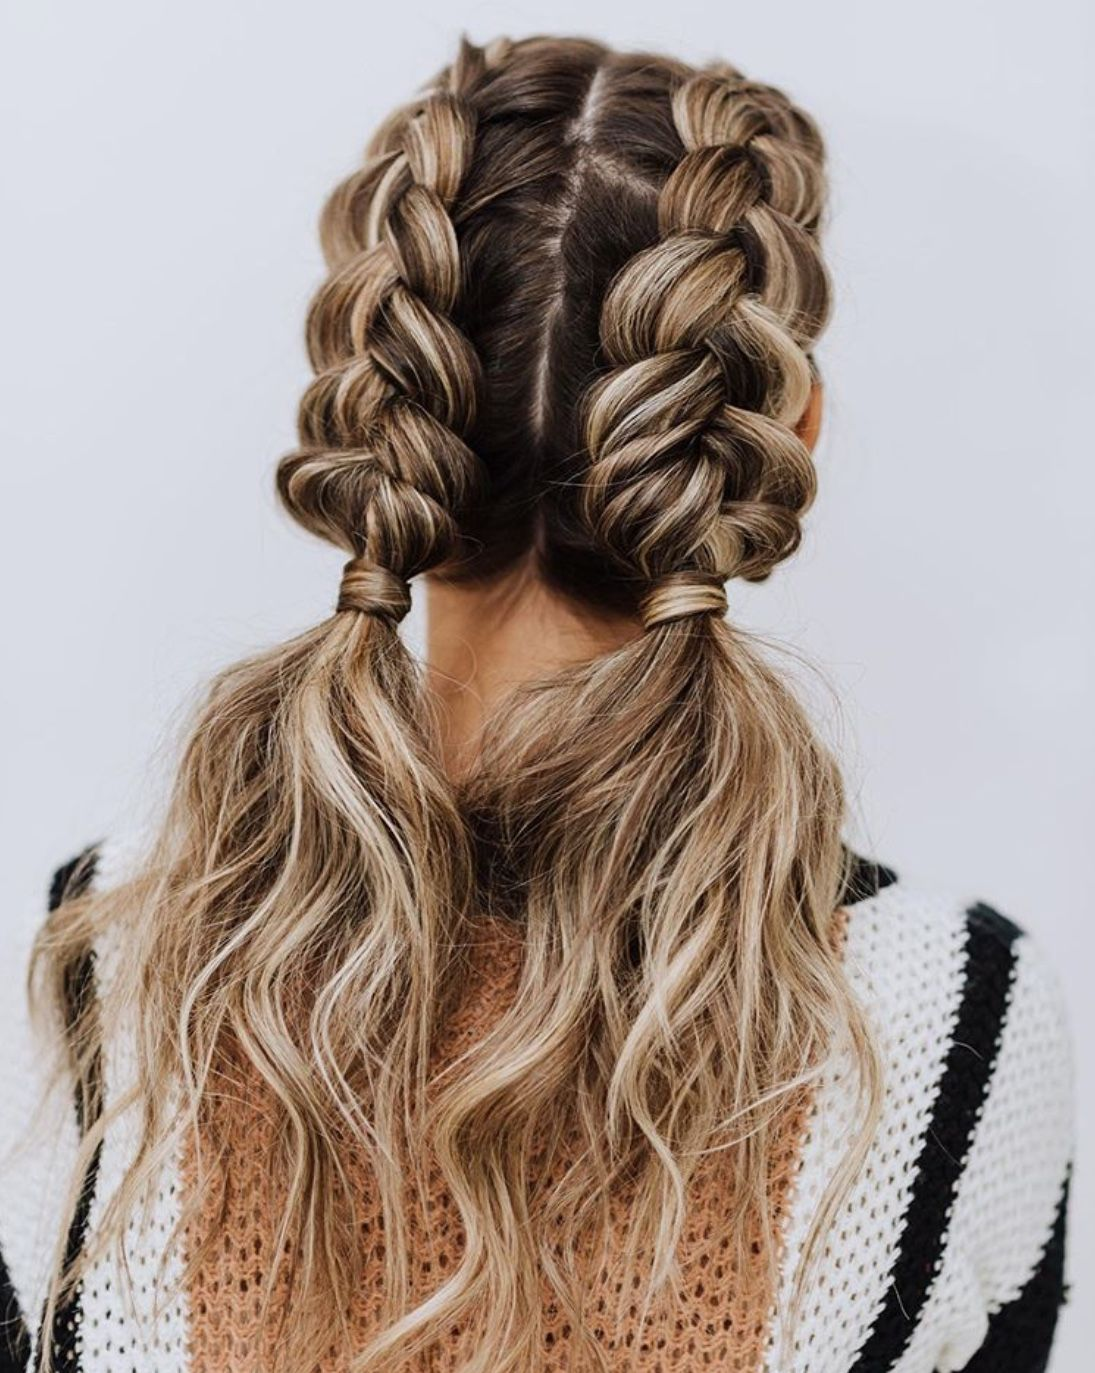 Looking For Beautiful Braided Hairstyles You Can Easily Do On Your Own Then Check Out Easy Braided Hairstyles For Long Braids For Long Hair Active Hairstyles